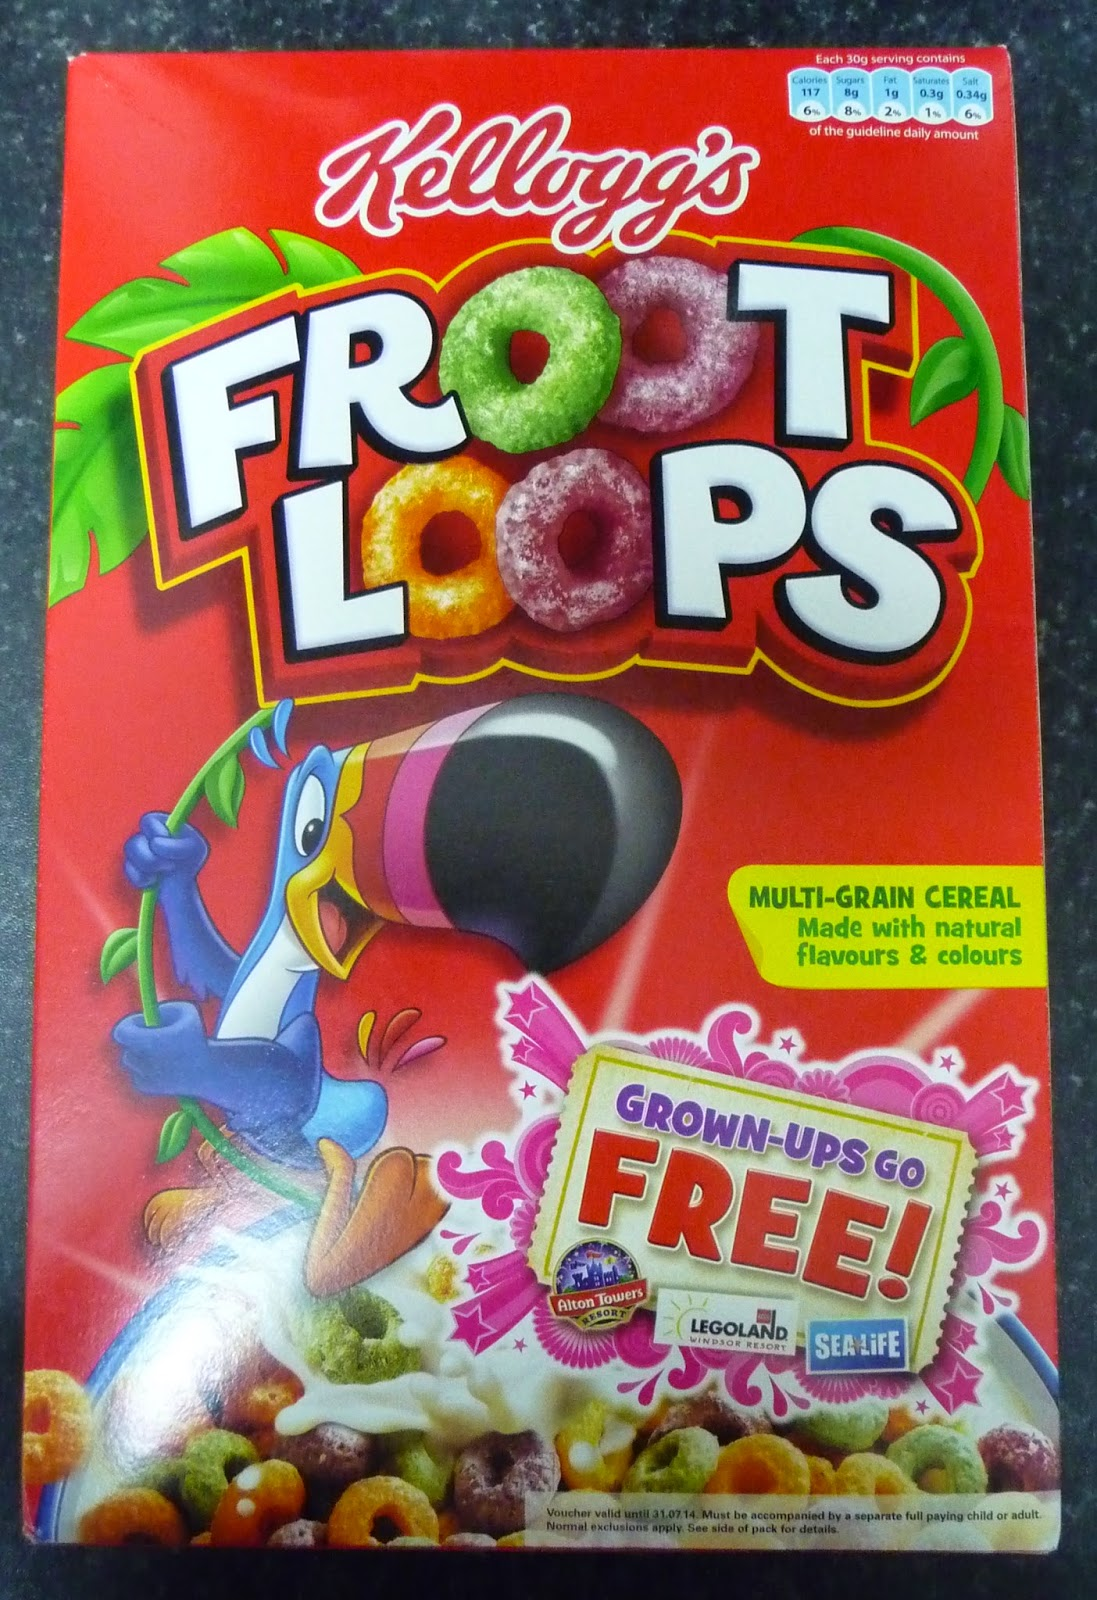 Something to look forward to: Kellogg's Froot Loops